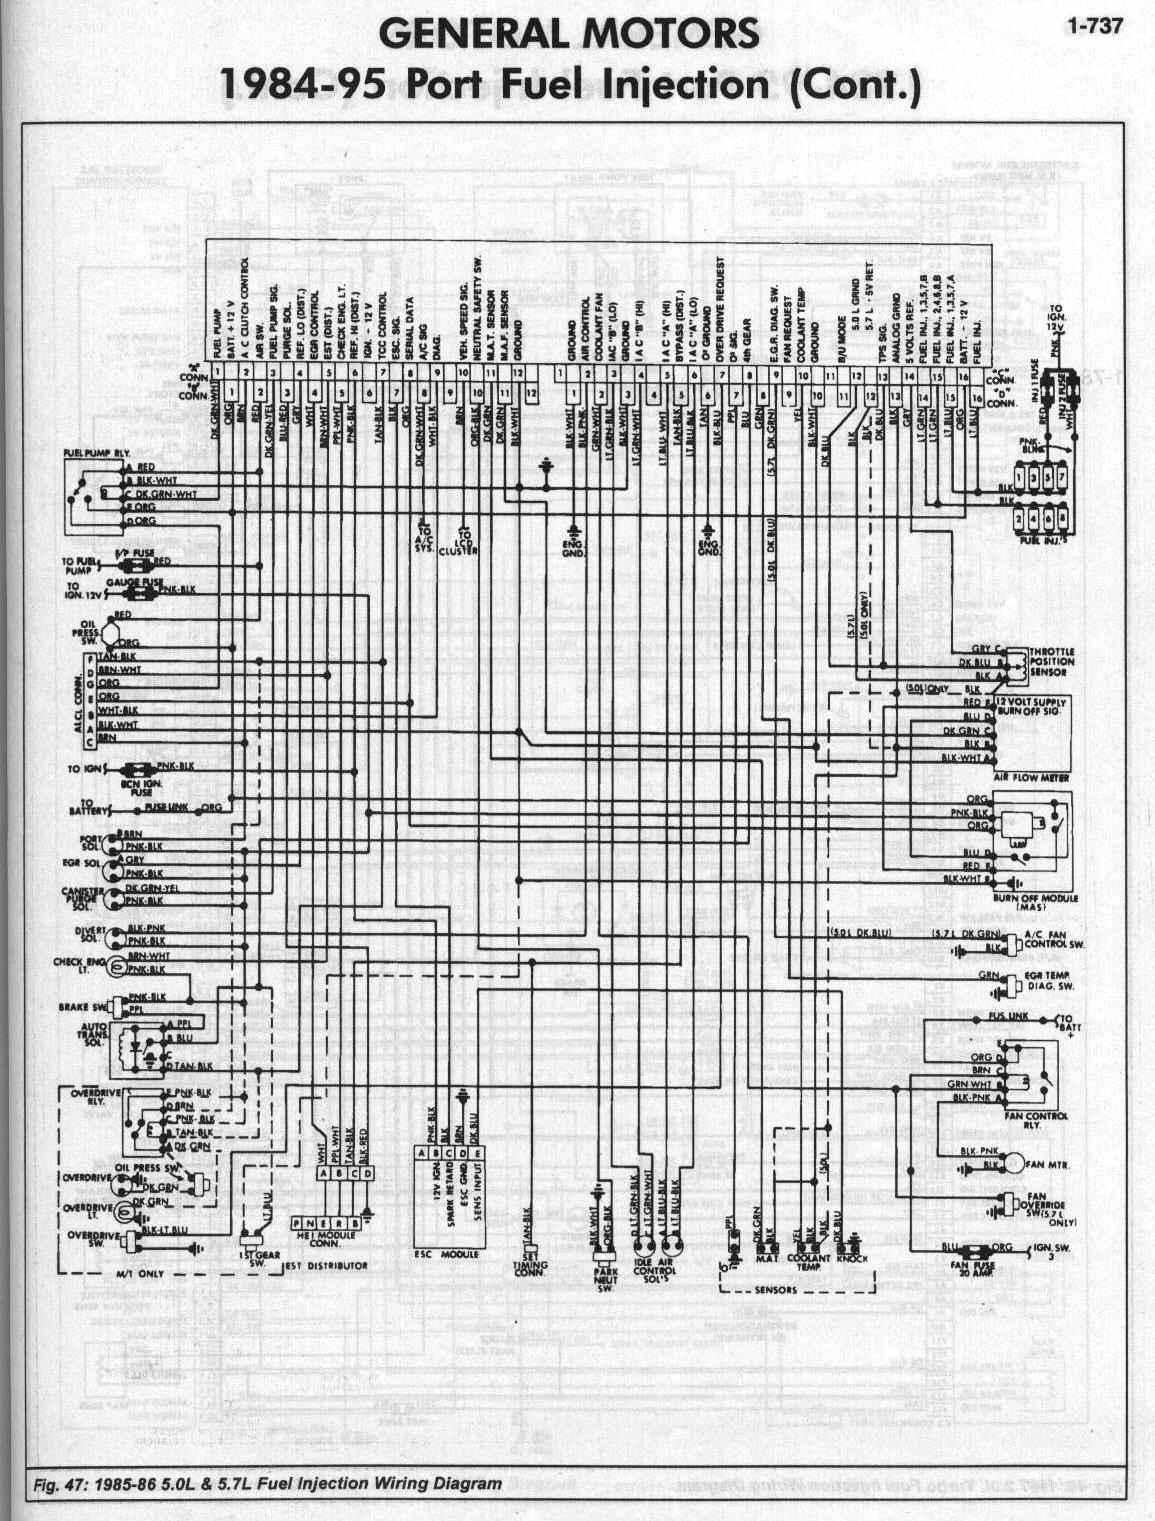 1989 camaro tbi wiring diagram trusted wiring diagrams u2022 rh sivamuni com